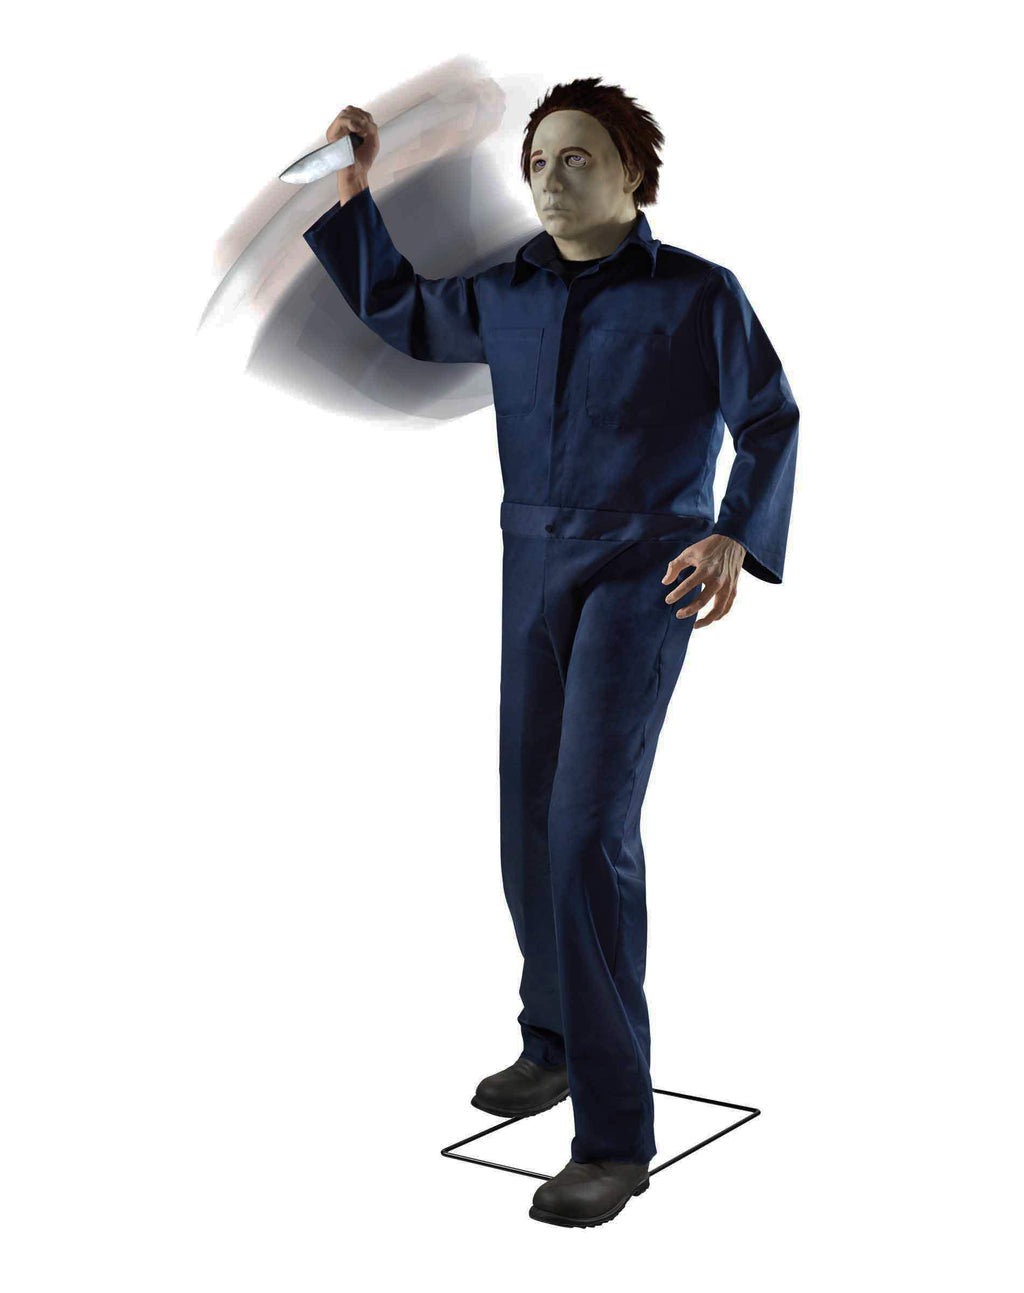 6 Ft Michael Myers Animatronics Decorations - Halloween H20